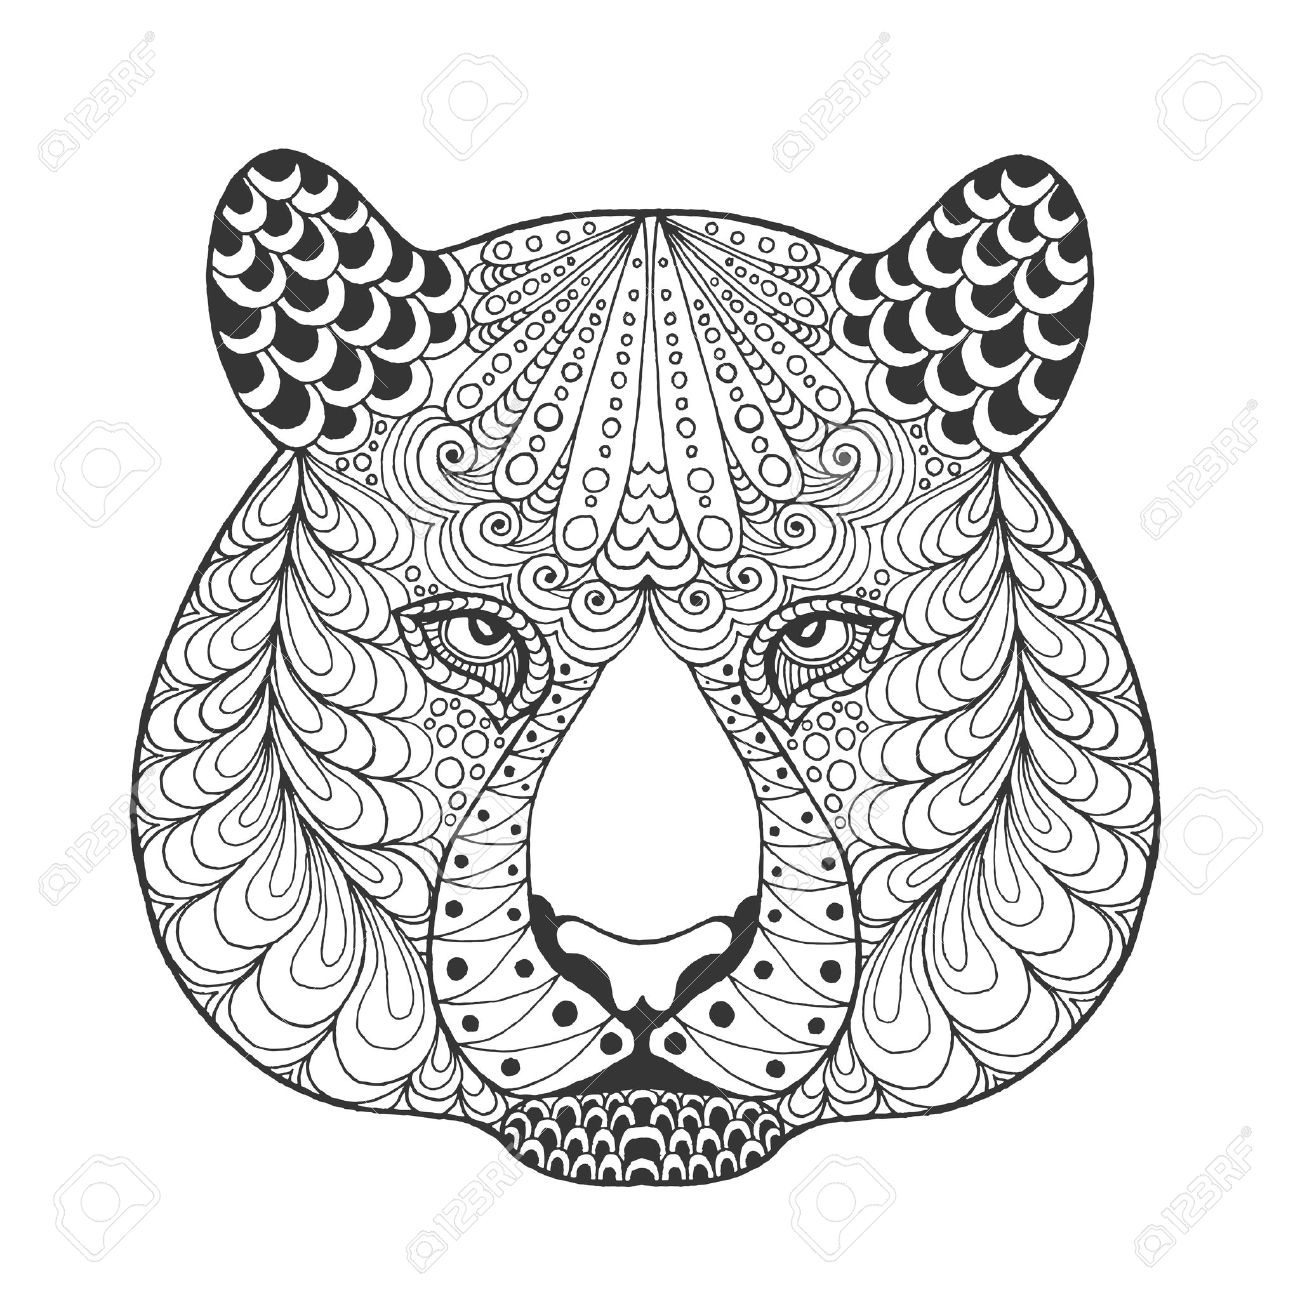 indian tigers stock photos royalty free indian tigers images and